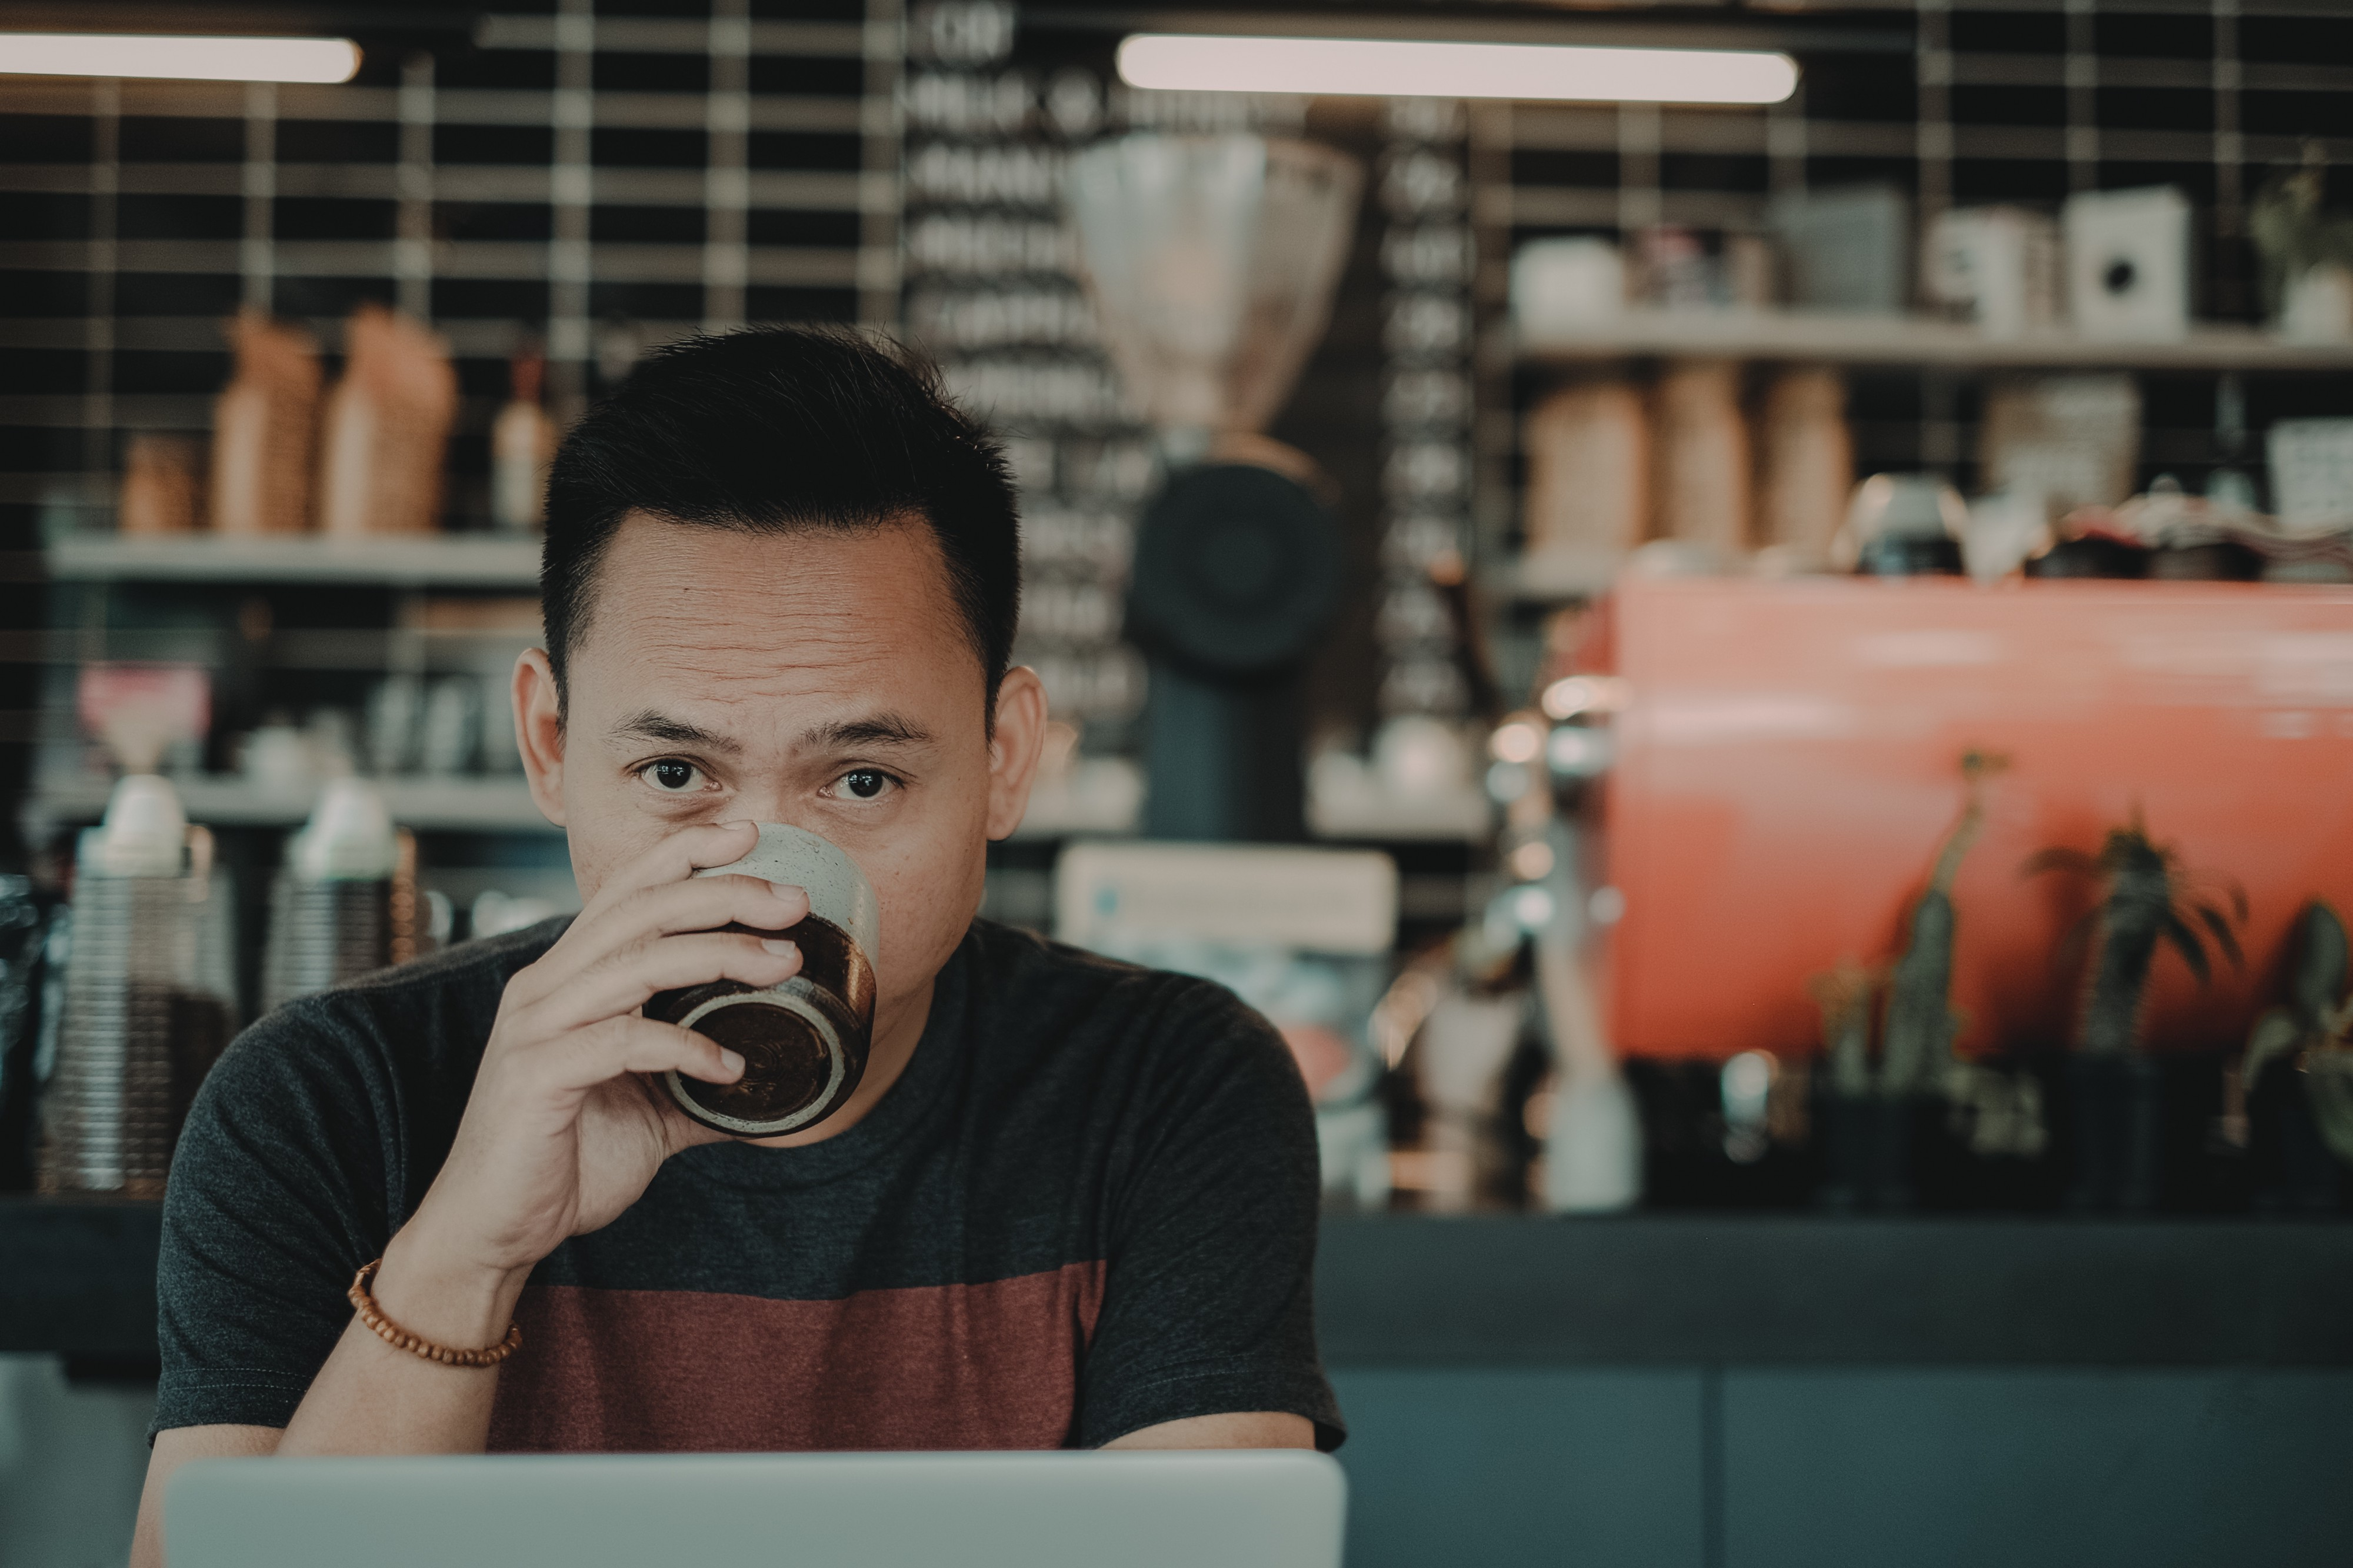 Man of Asian origin with short hair behind laptop drinking coffee in a retro-style cafe looking directly into the camera.